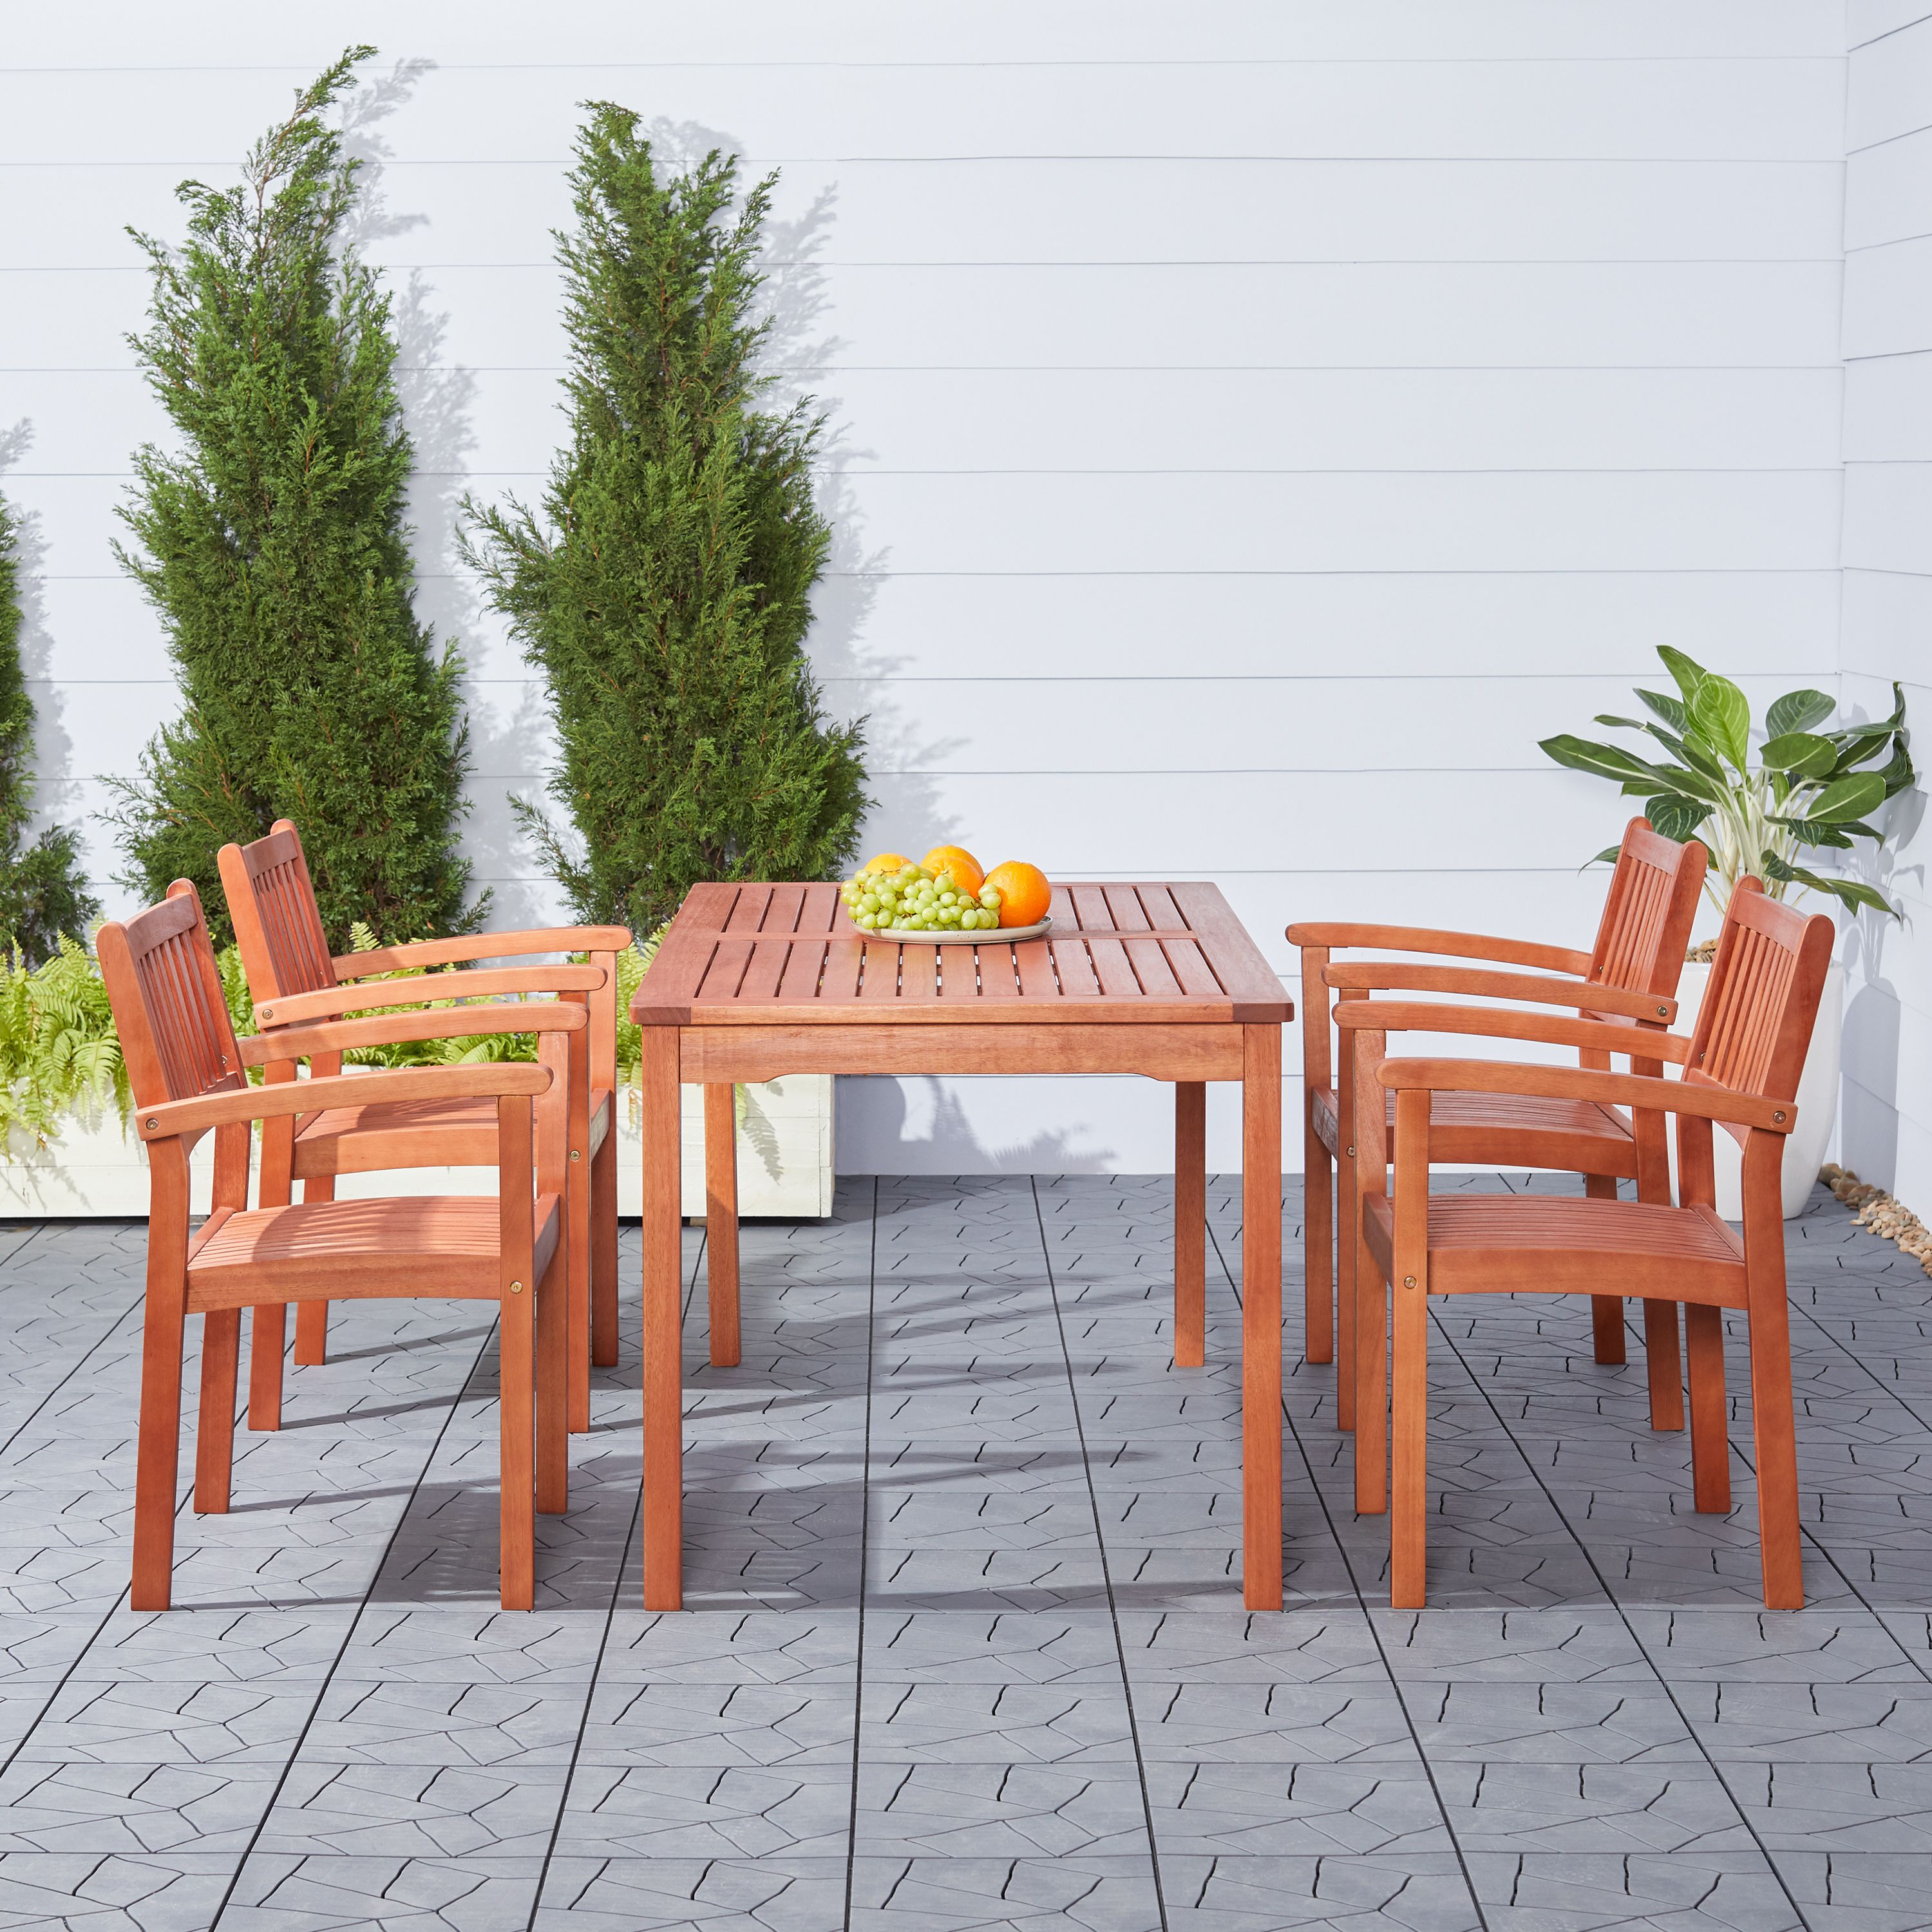 malibu outdoor 5 piece wood patio dining set with stacking chairs